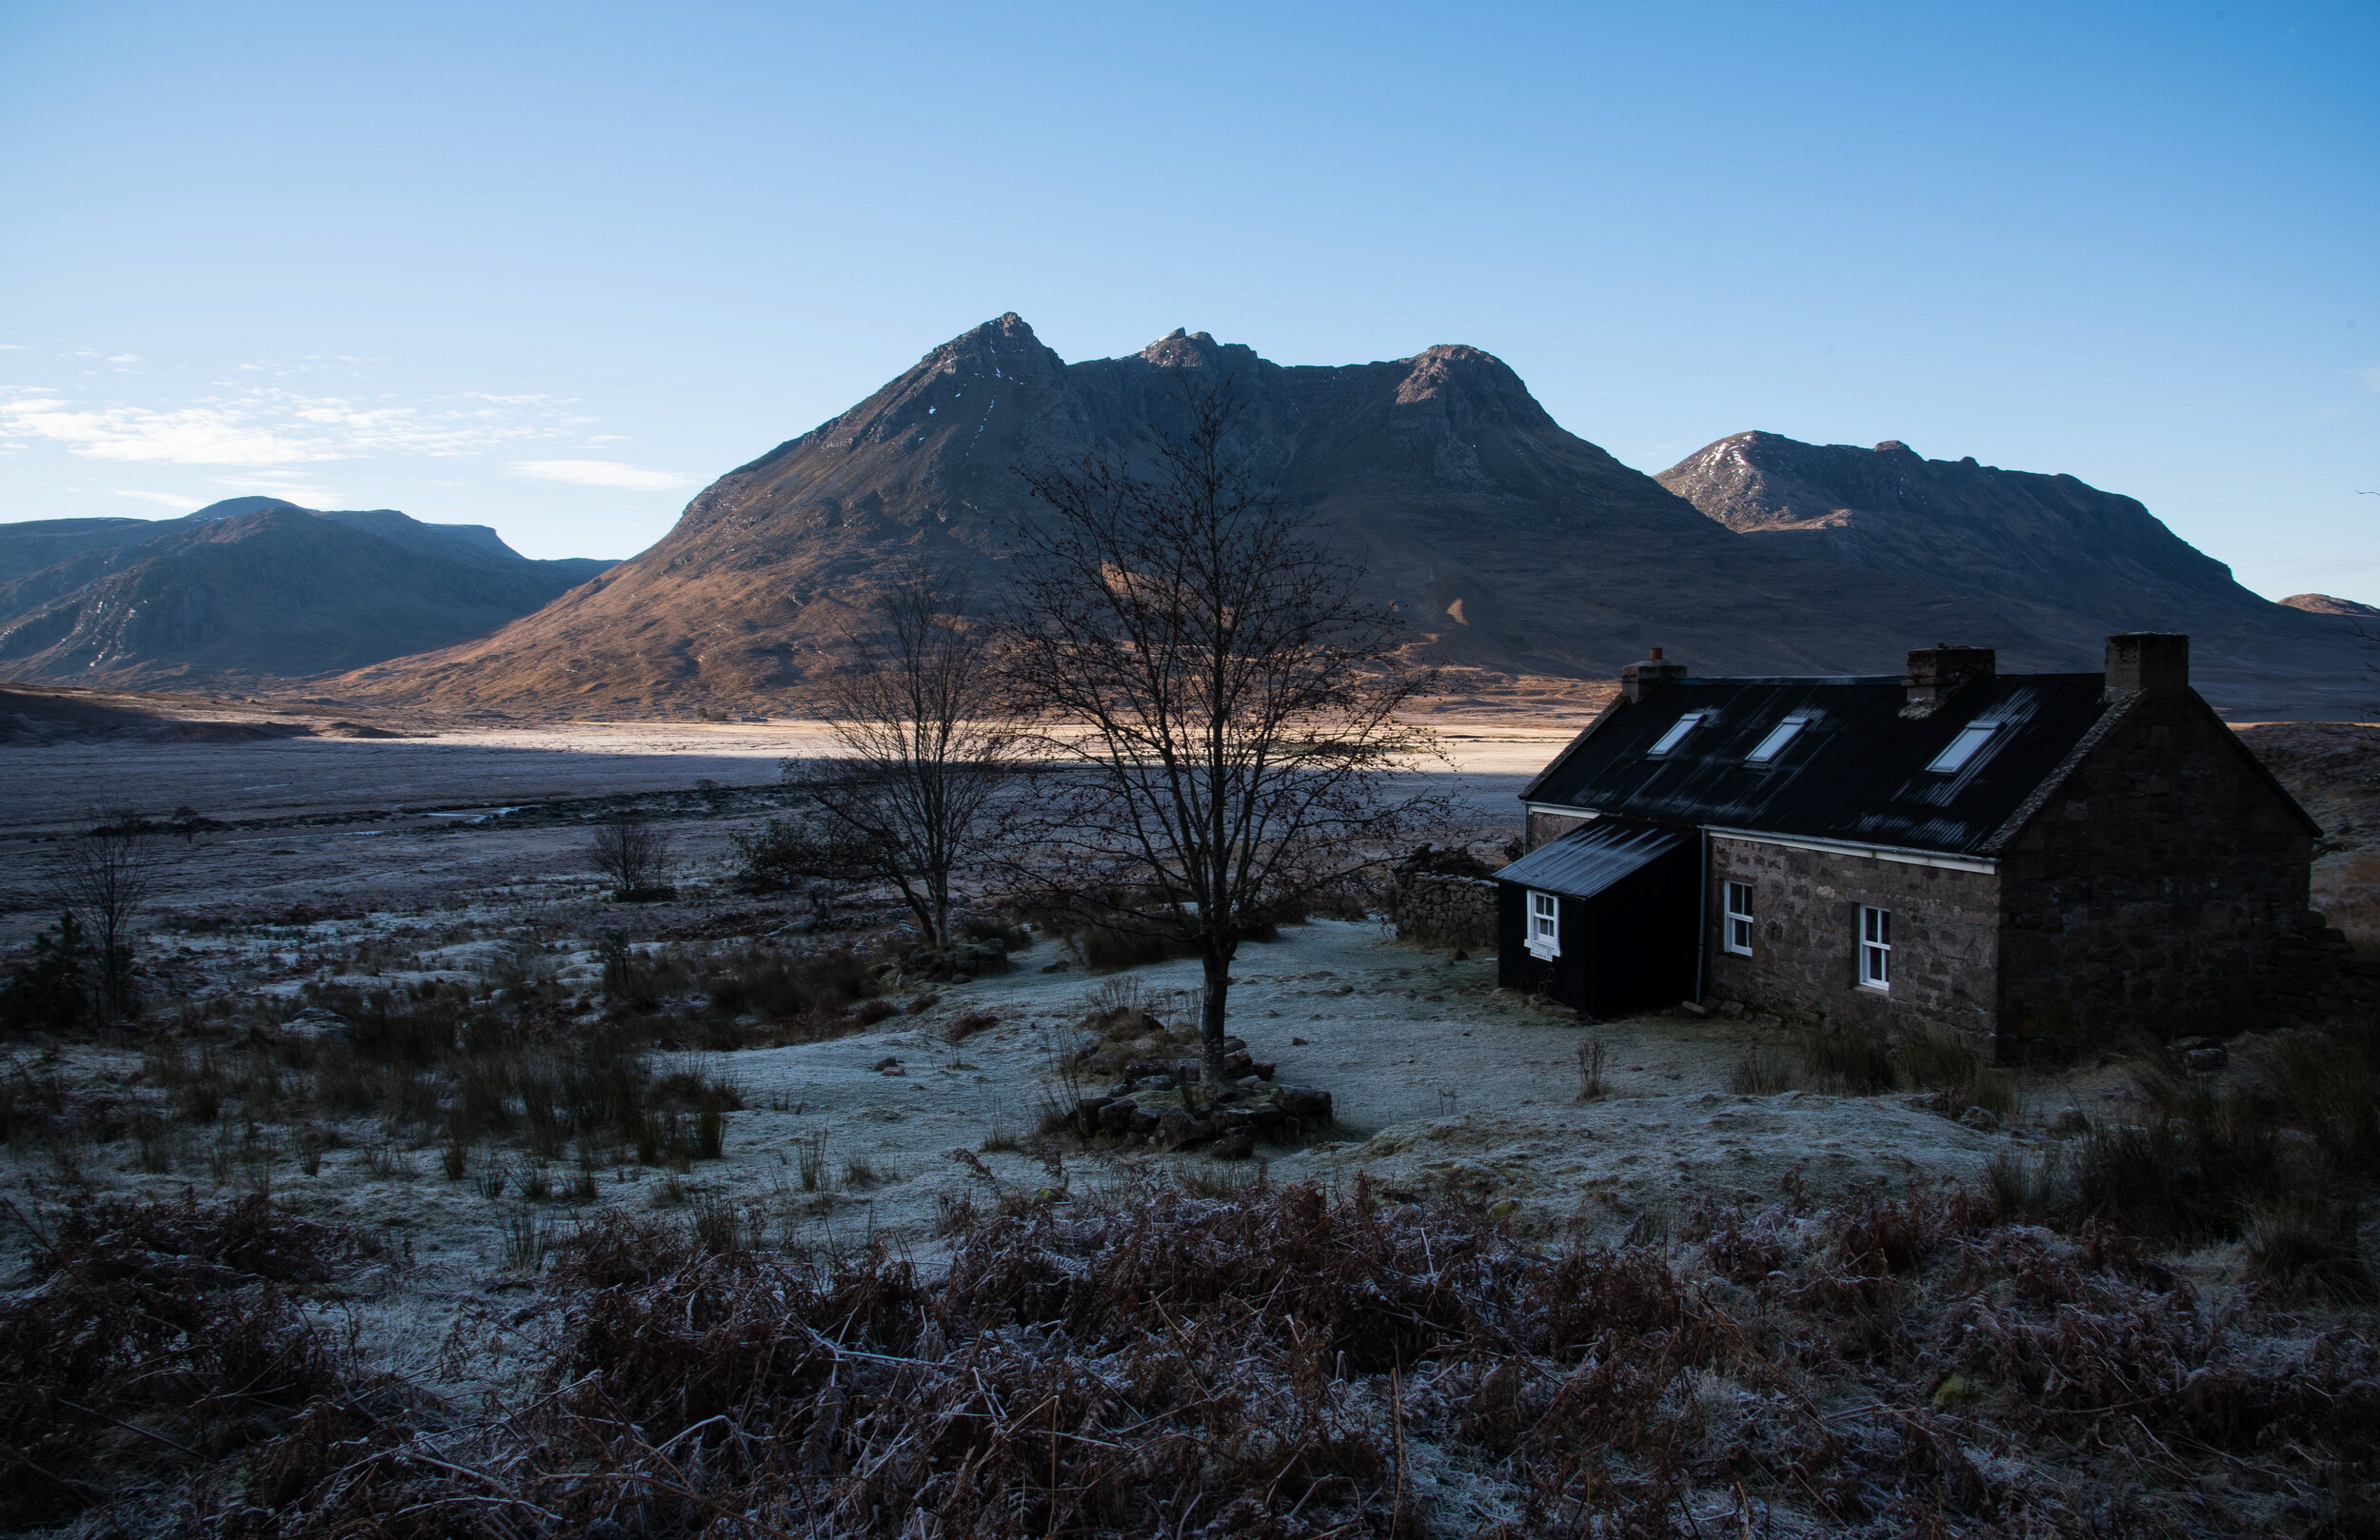 Sheenavall bothy, one of the author's favourite buildings